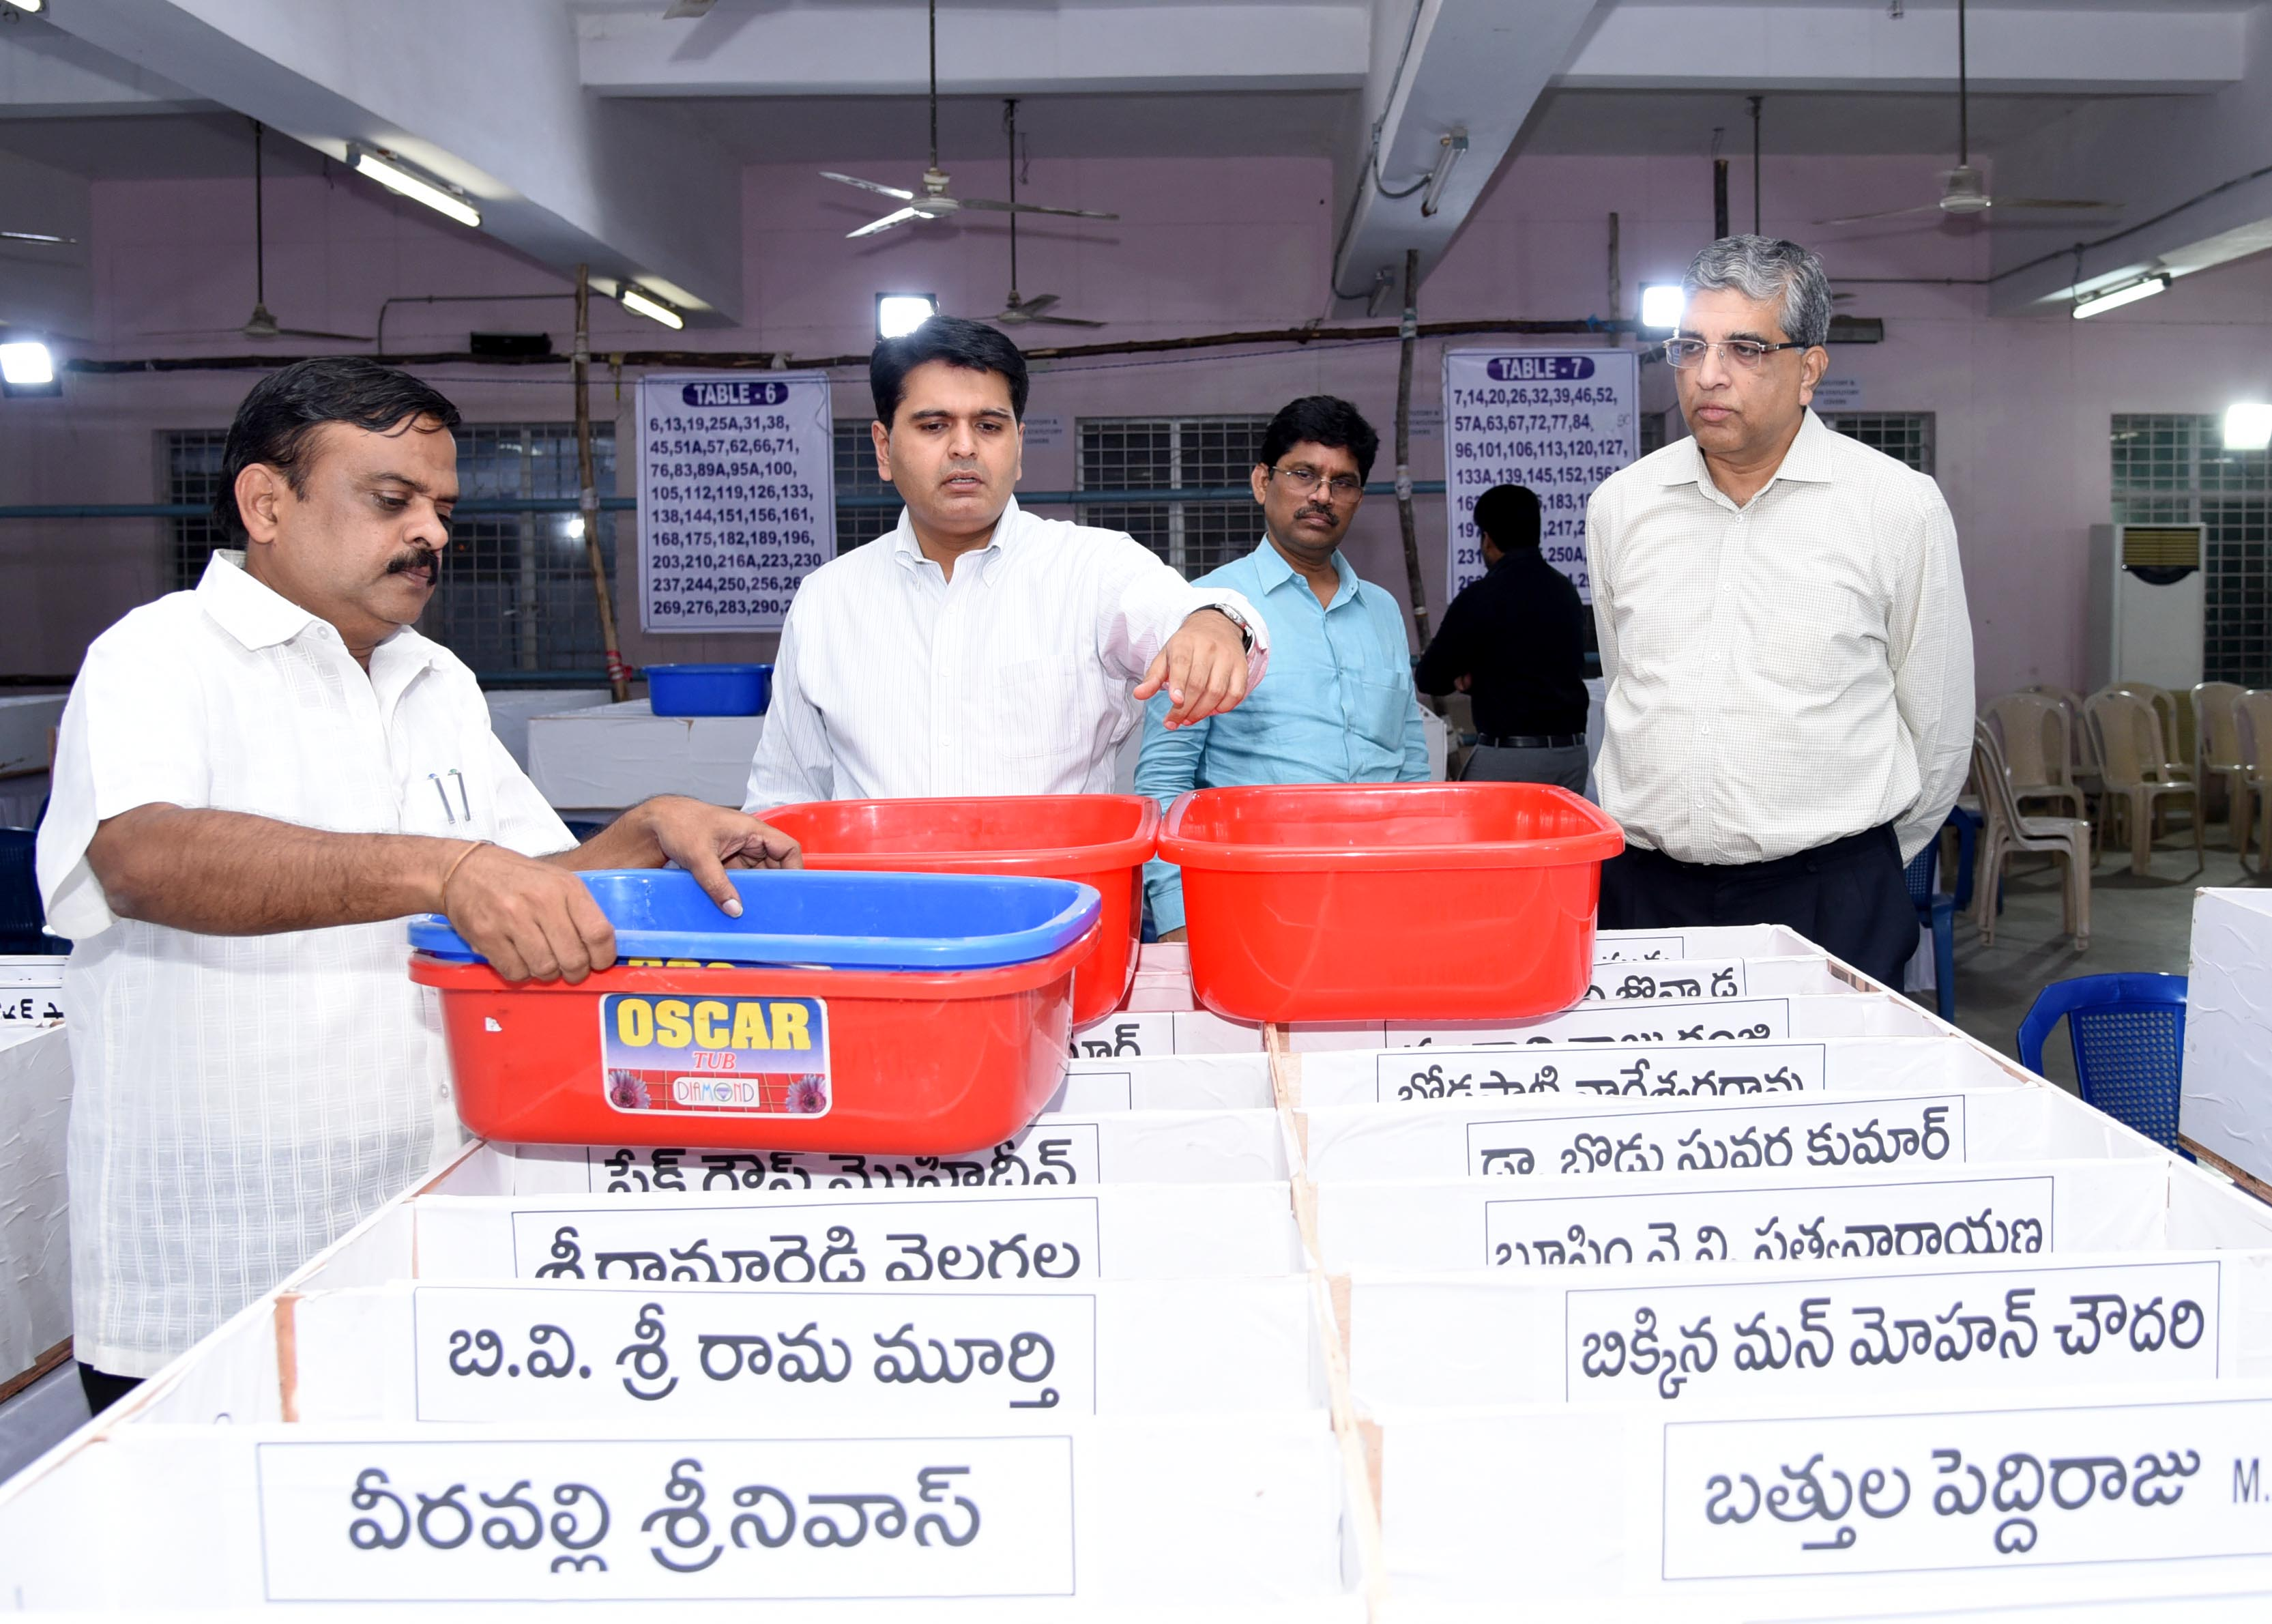 MLC Observer and Collector supervised counting arrangements